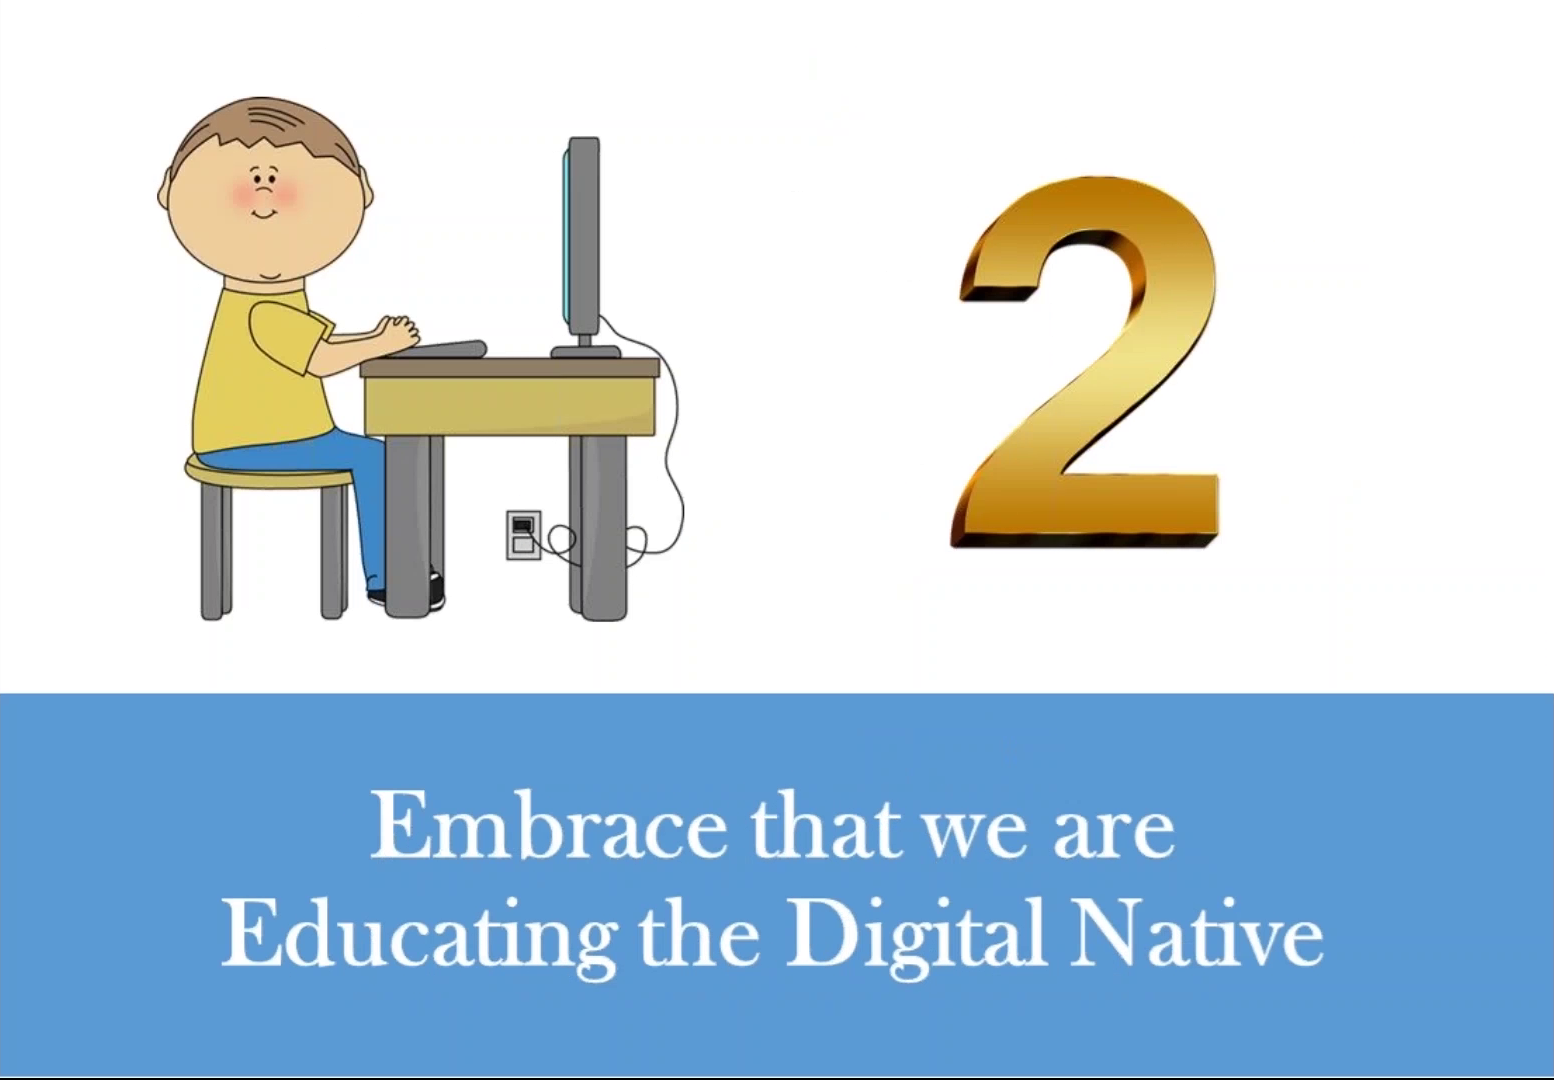 Embrace that we are Educating the Digital Native